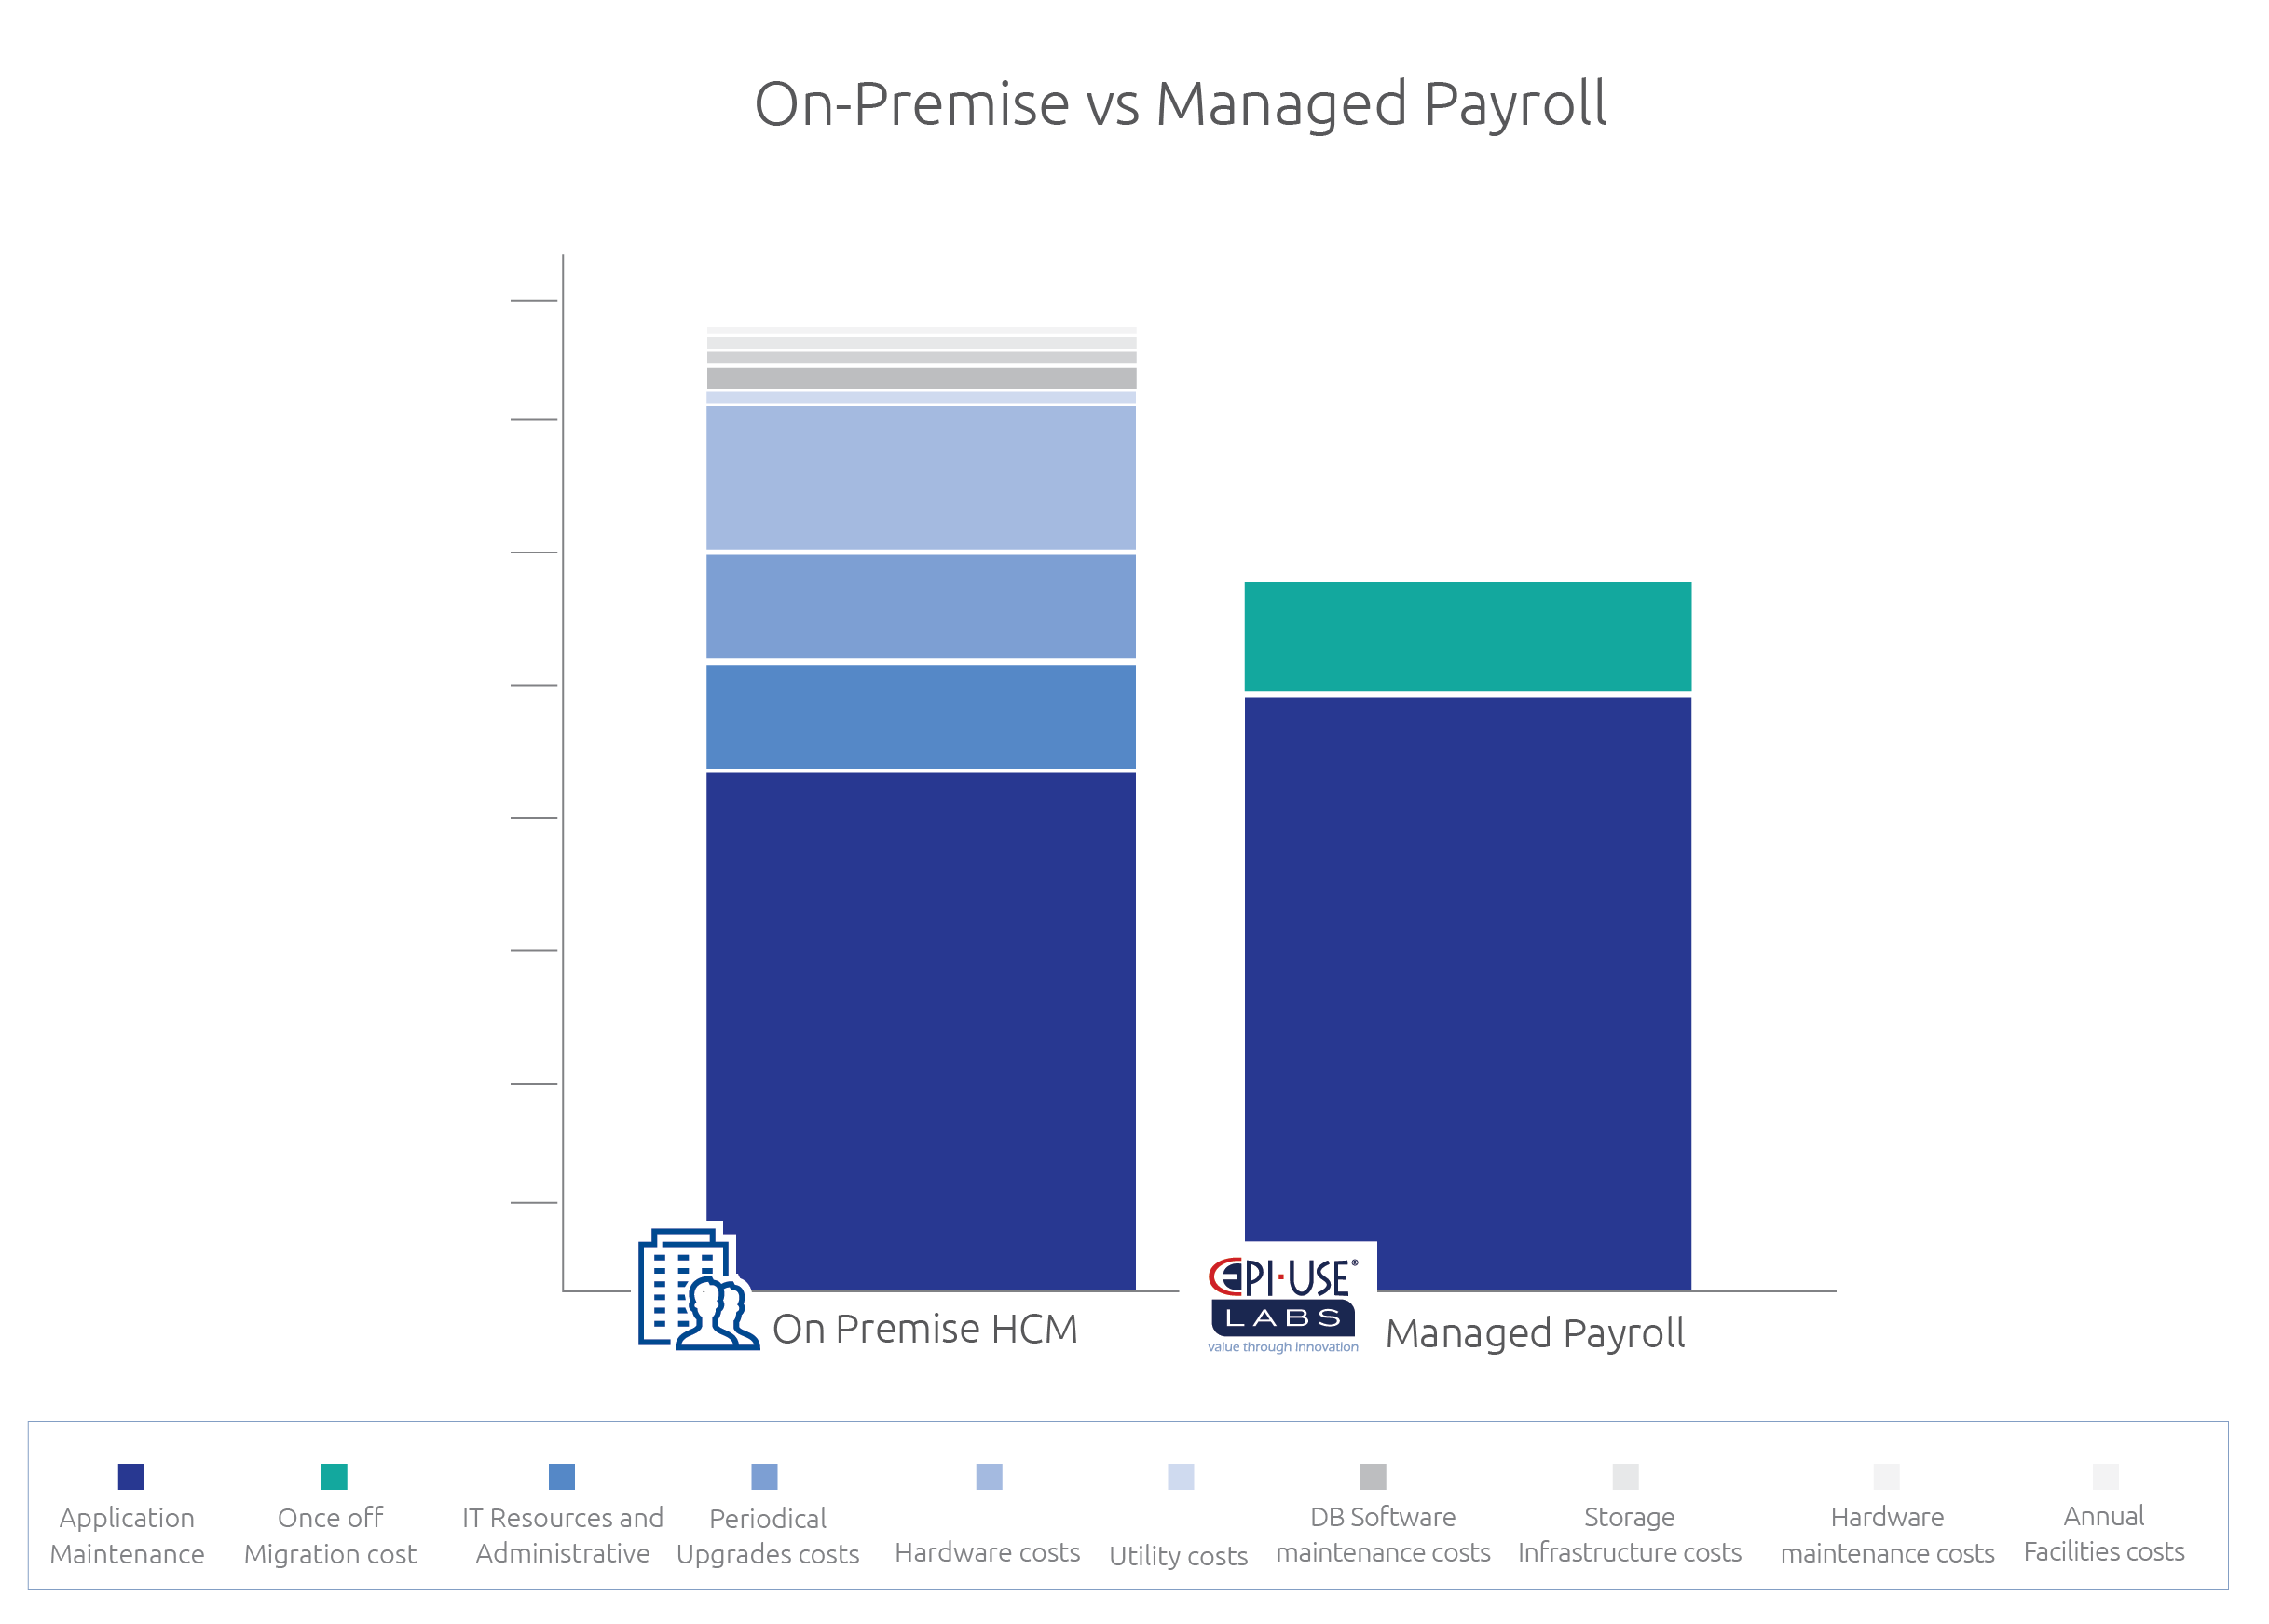 Are there cost savings with Managed Payroll?